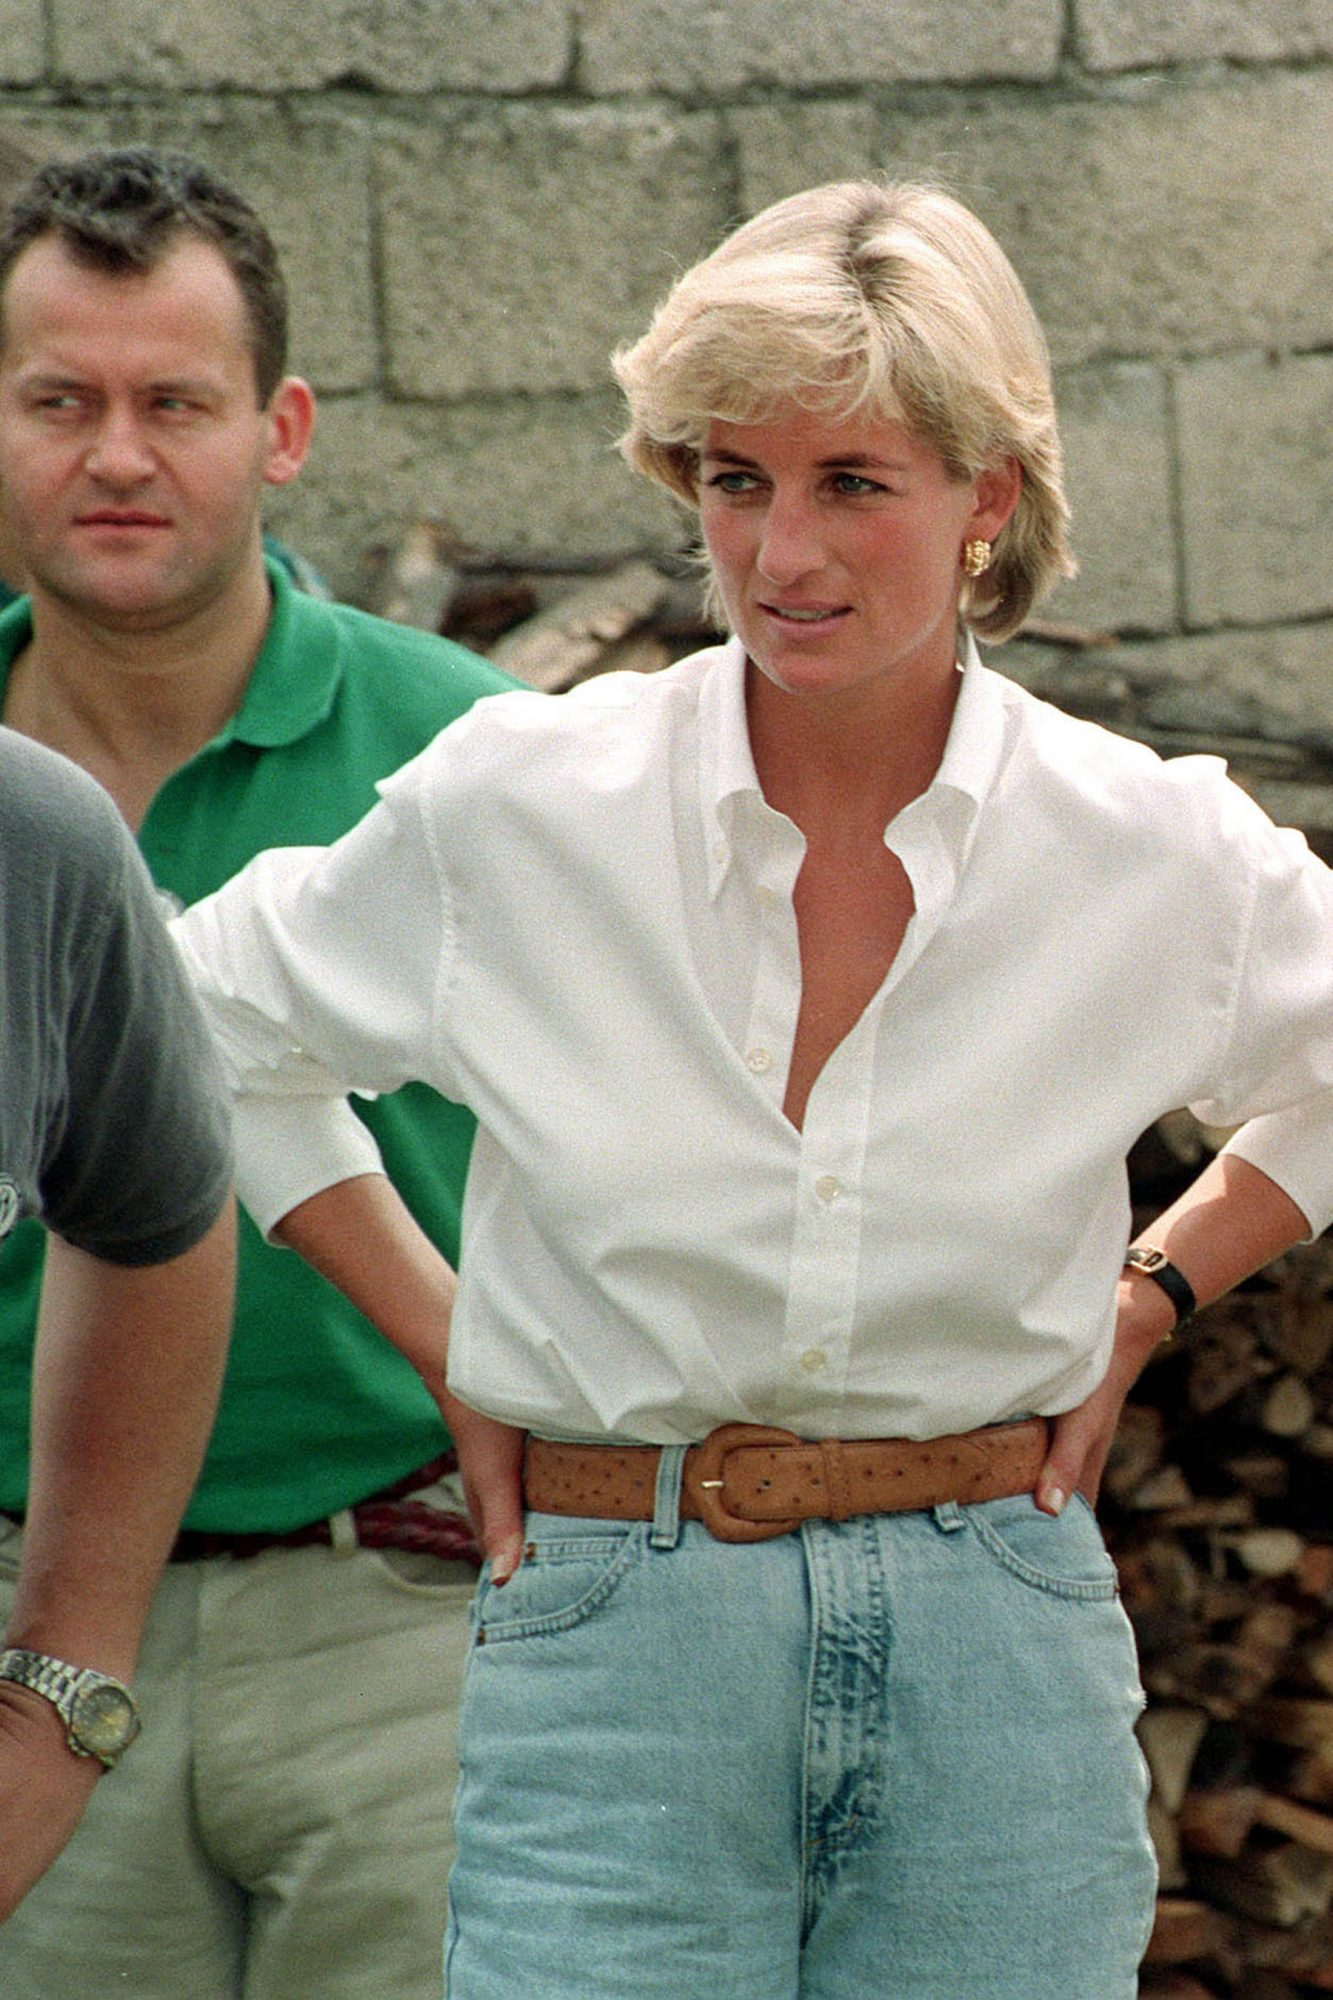 Diana's visit was planned in secrecy